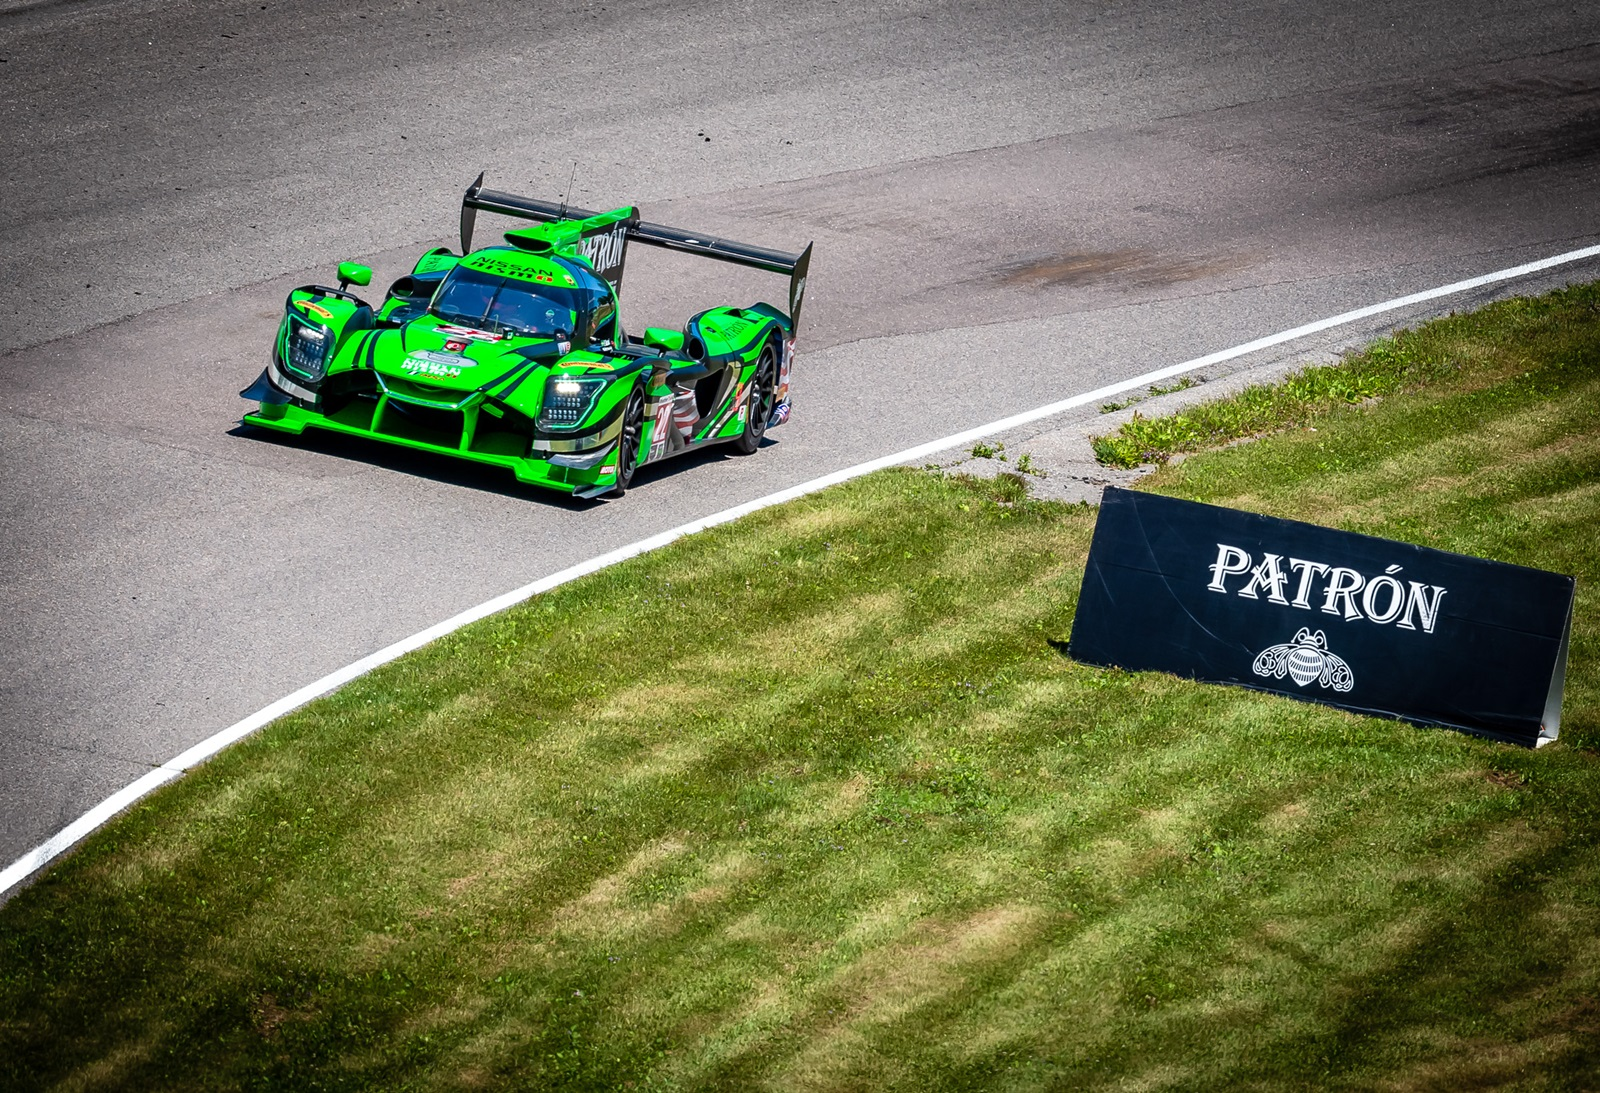 Photo of IMSA – Derani volta a Road America e espera repetir vitória de 2017